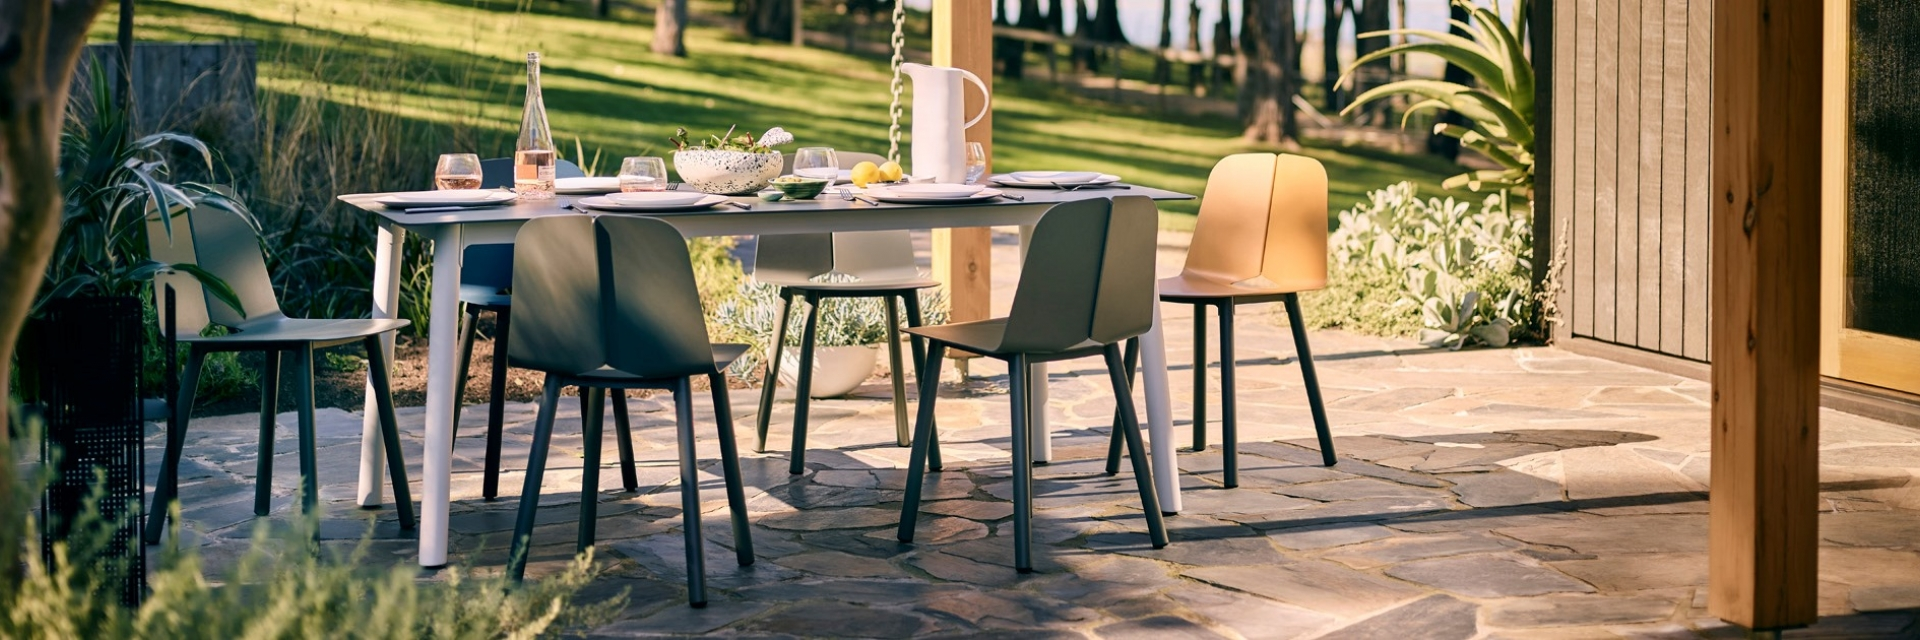 Seam dining by Tait, Seam designed by Adam Cornish